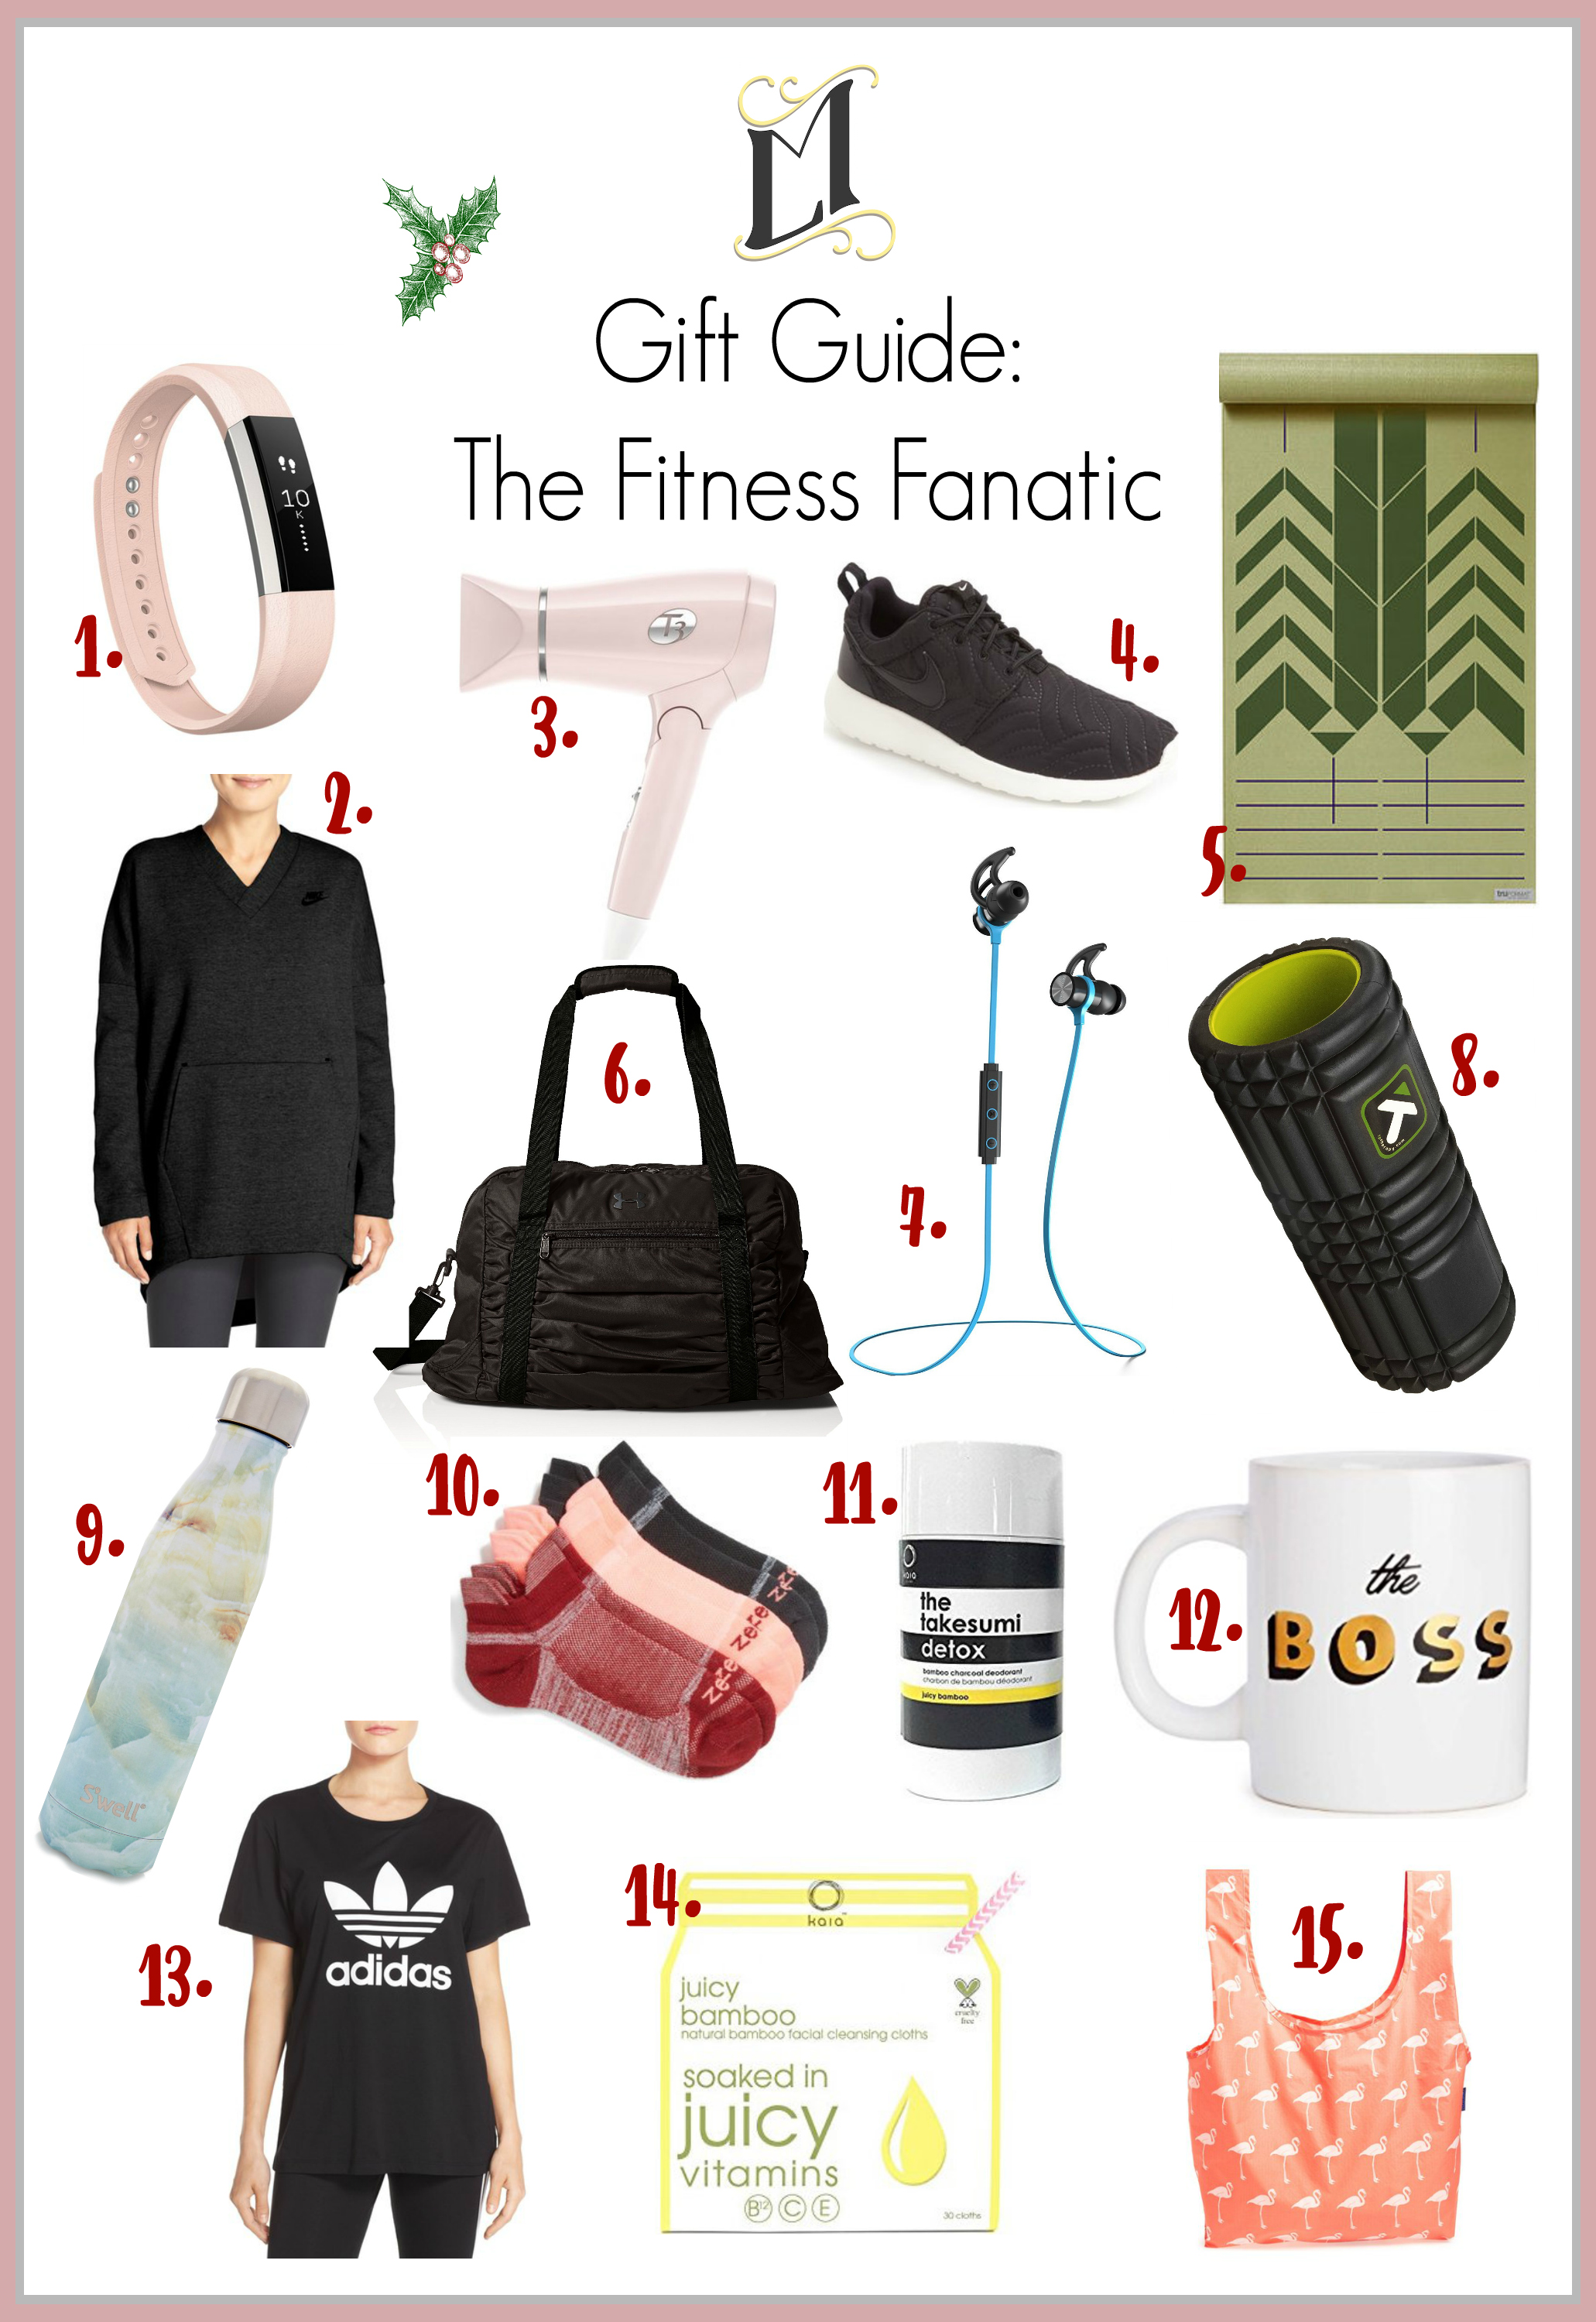 Gift Guide for the Fitness Fanatic.jpg